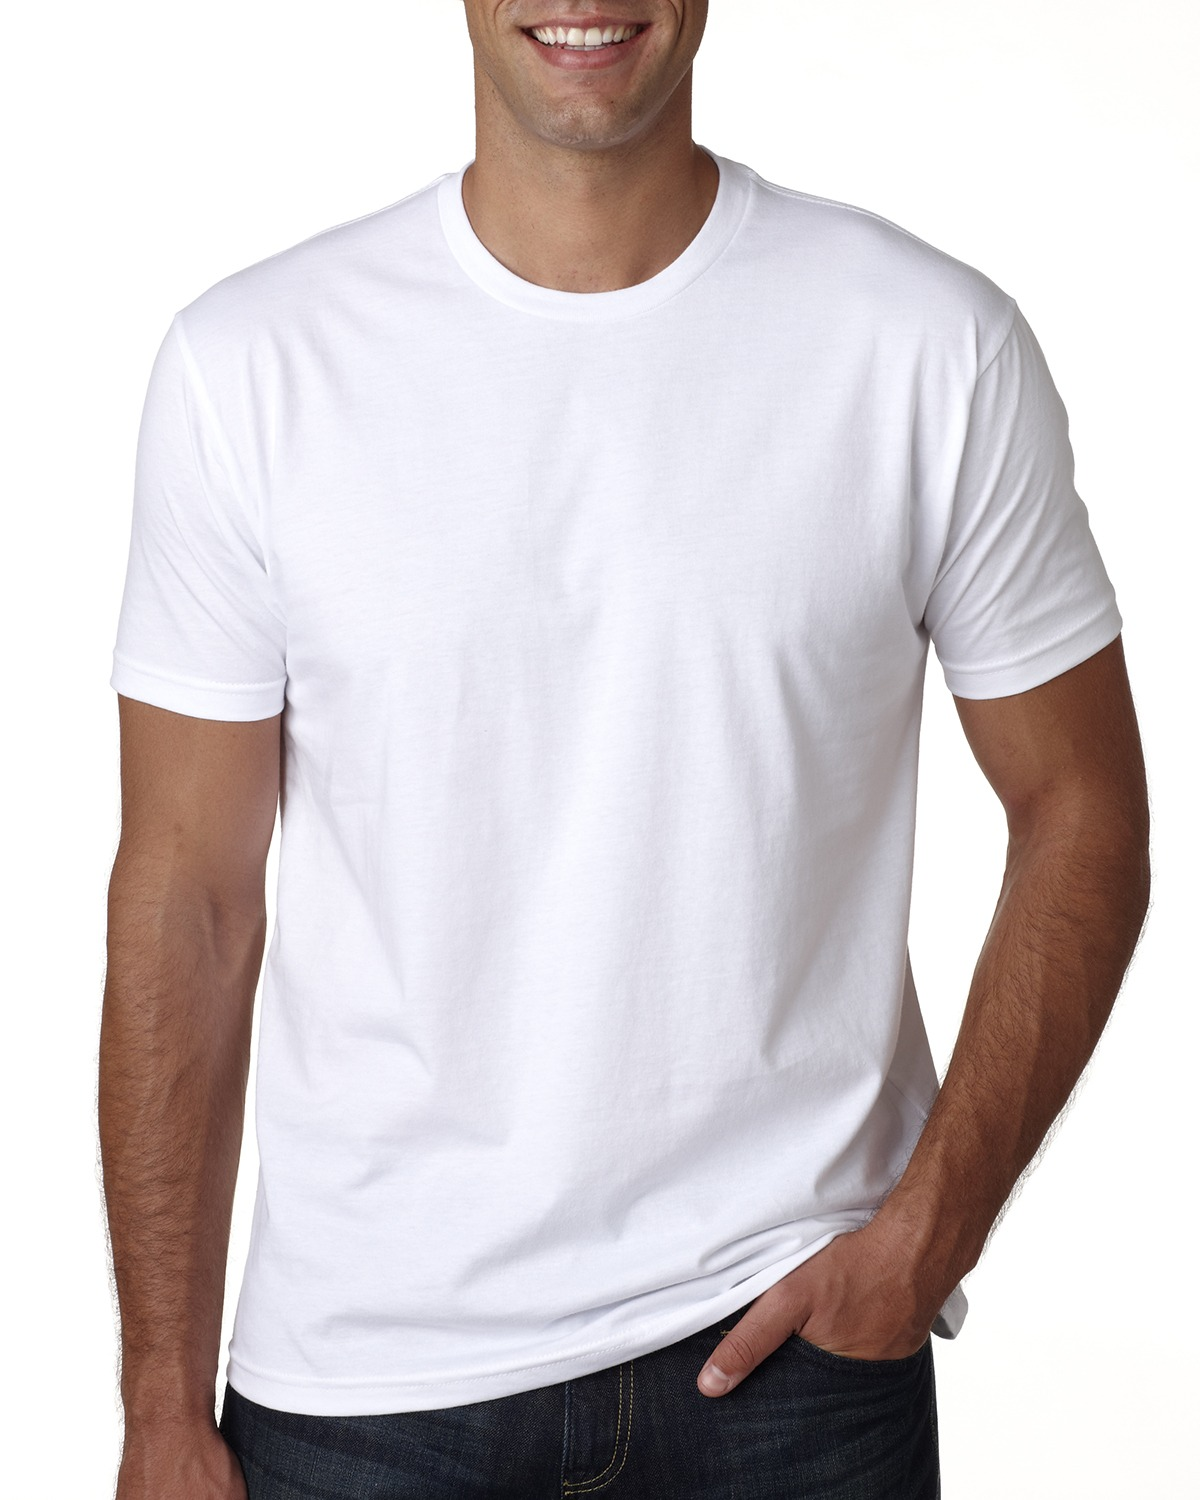 Branded Next Level Mens Cotton Crew - WHITE - 3XL (Instant Saving 5% & more)